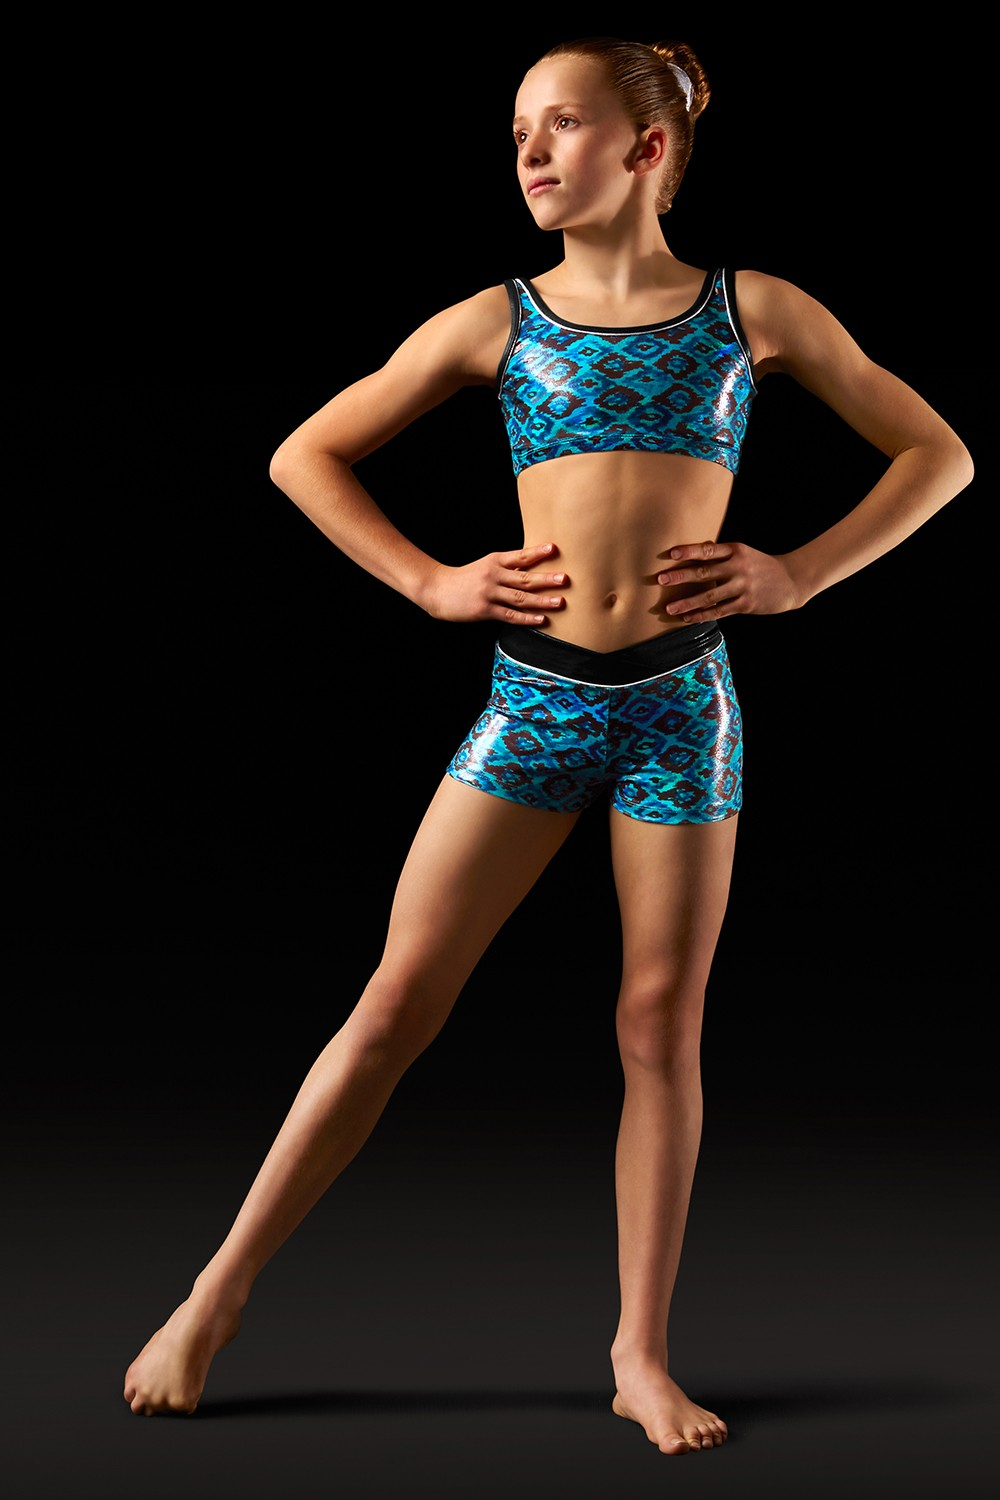 Top Curto/crop Aztec Women's Gymnastics Tops